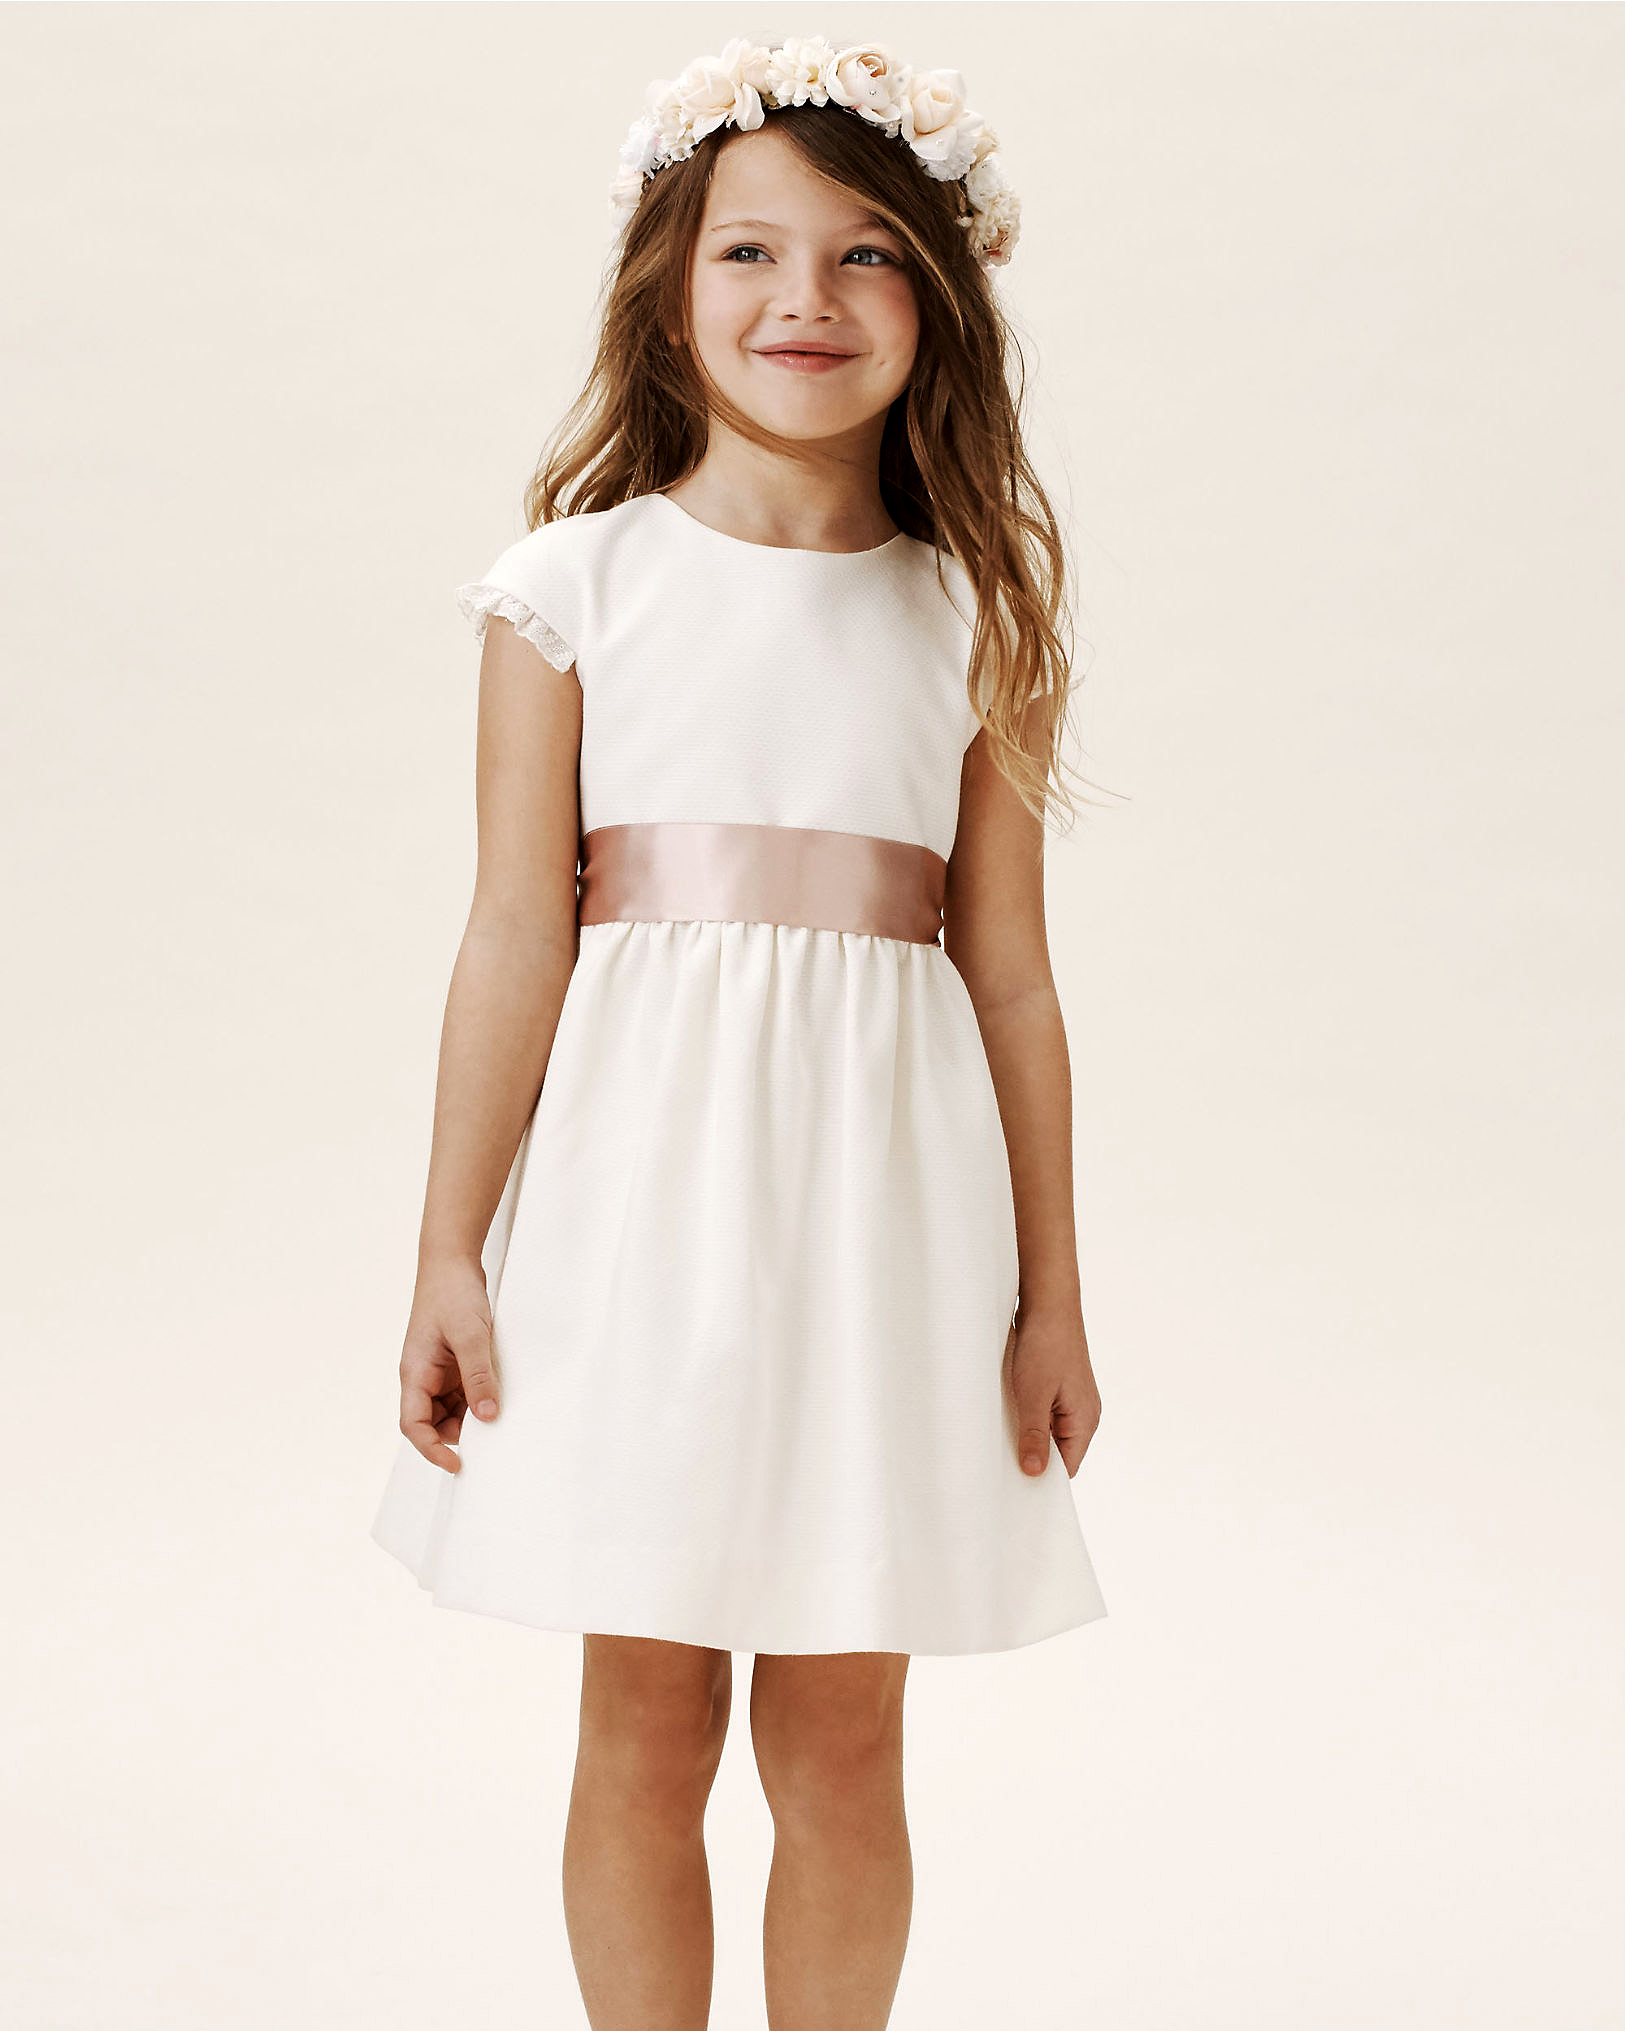 summer flower girl outfit white dress with ribbon